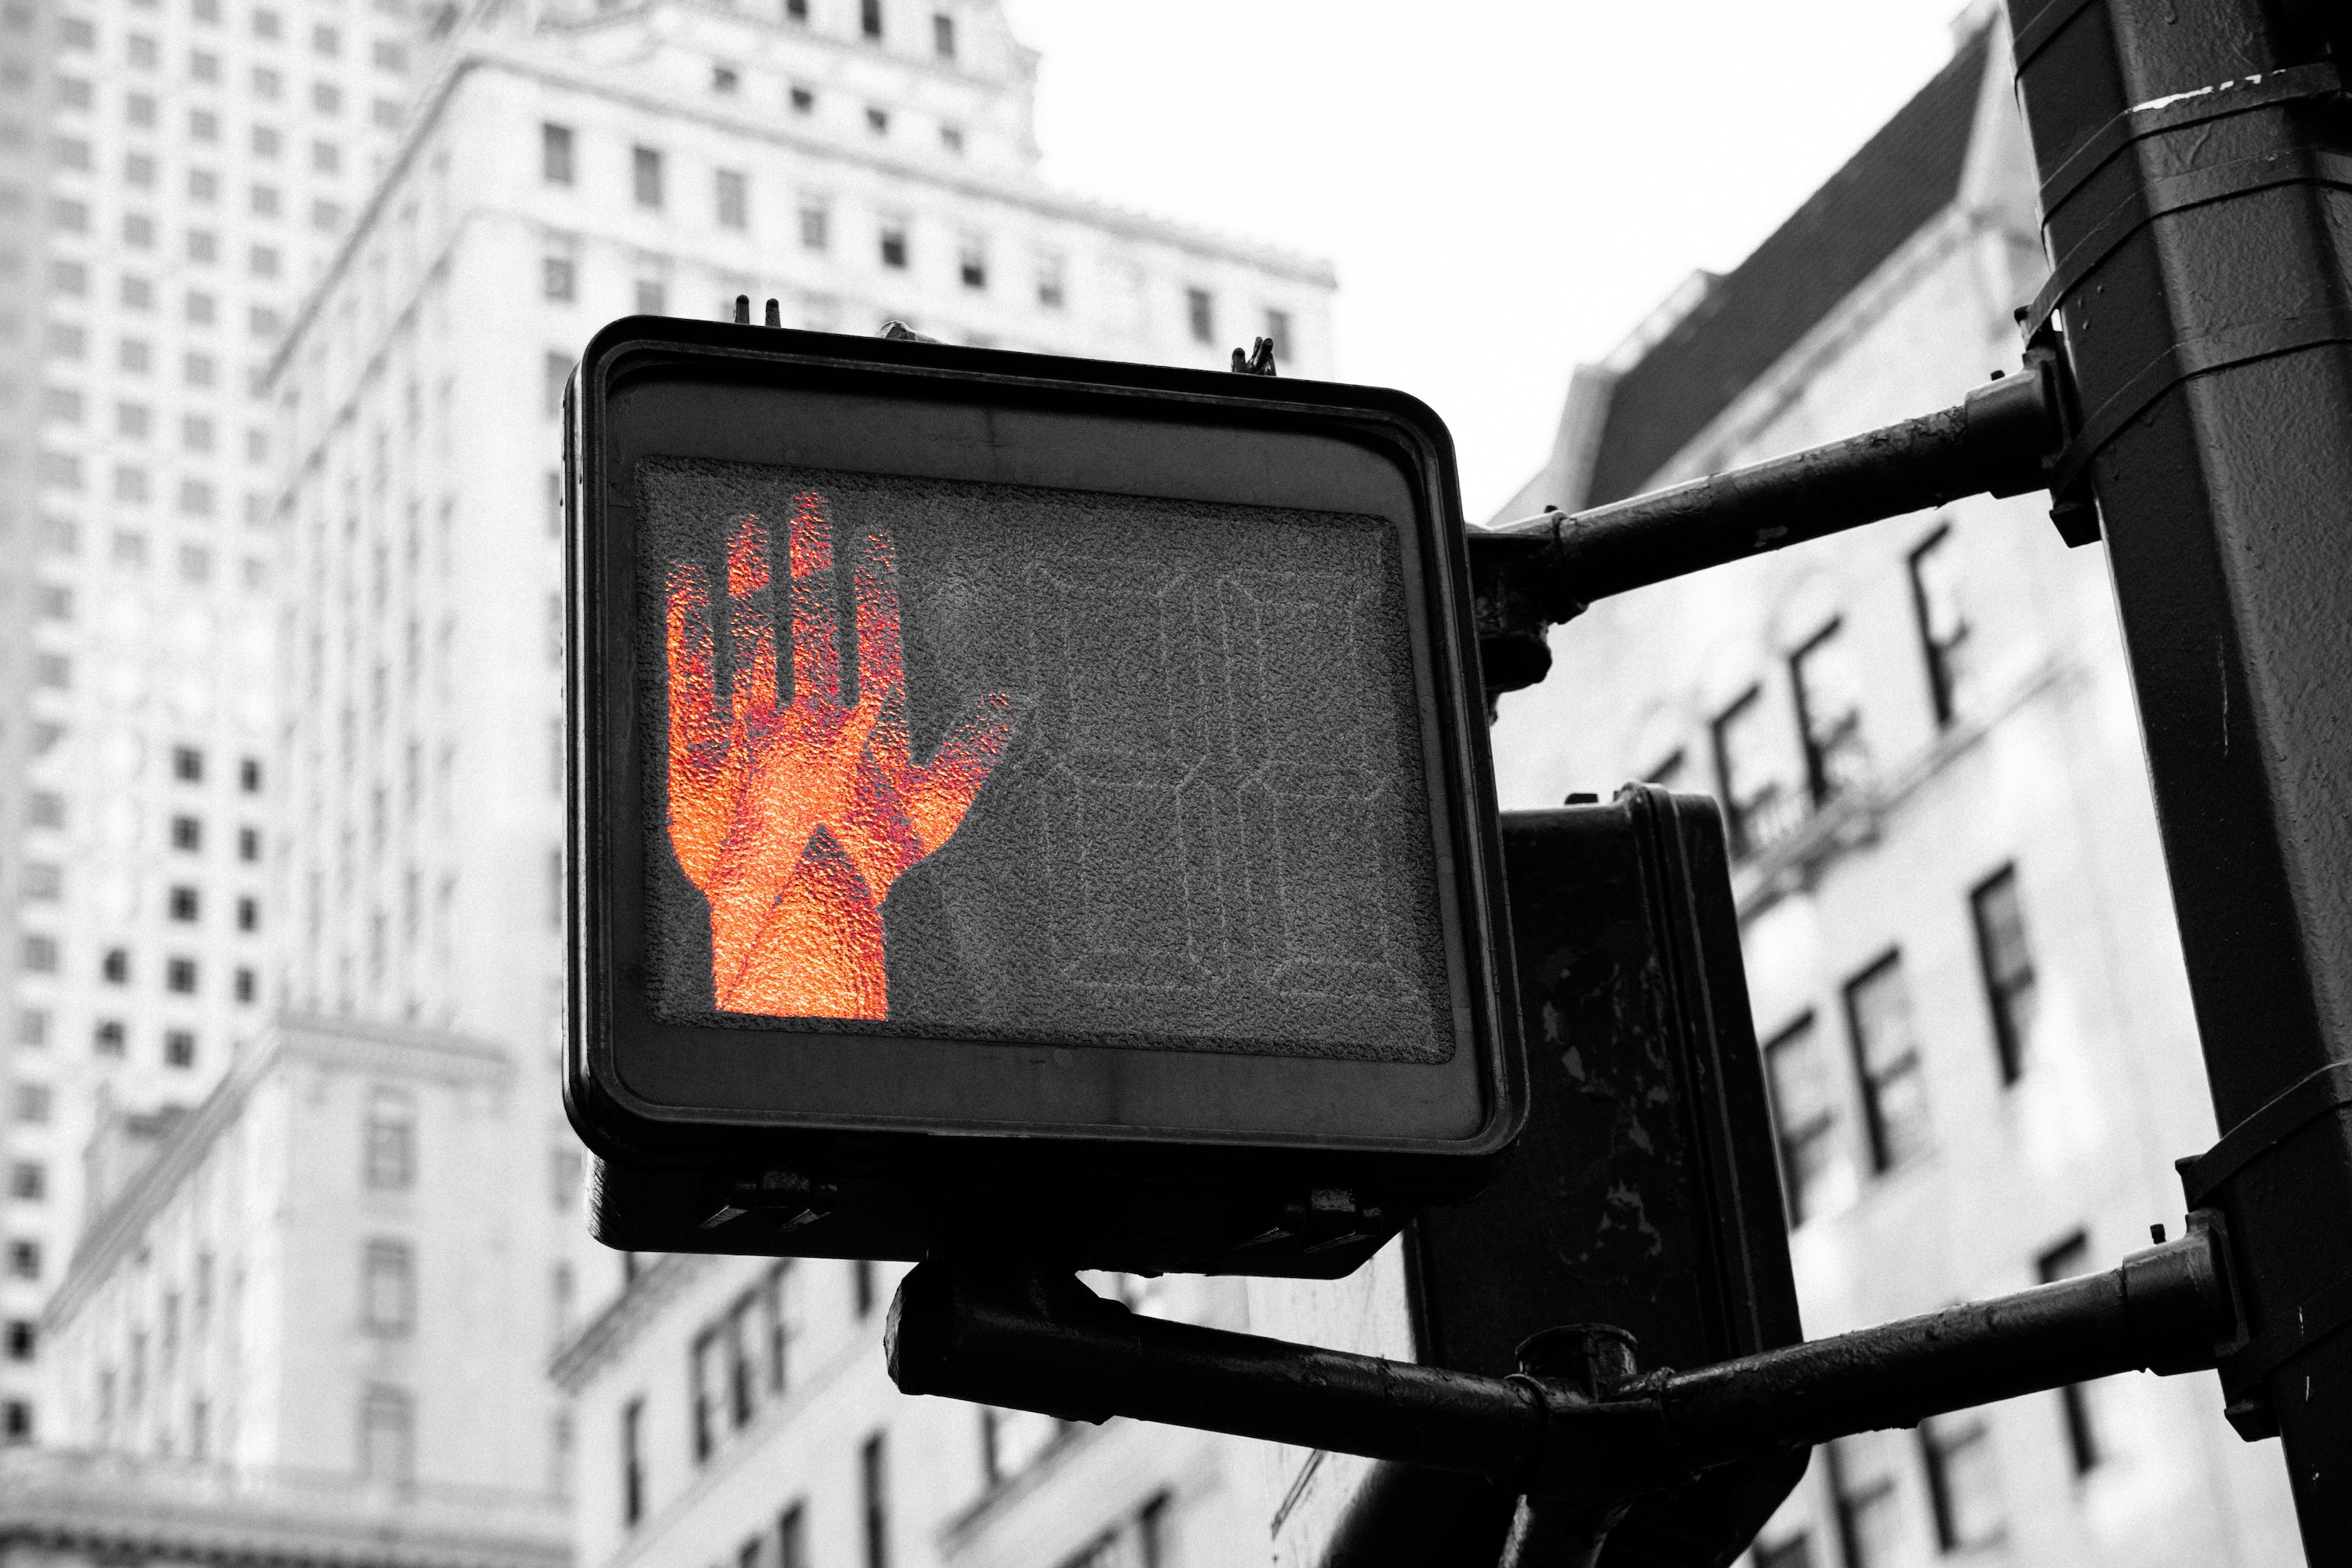 Black and white photo of a street crossing sign with the stop hand signal in red